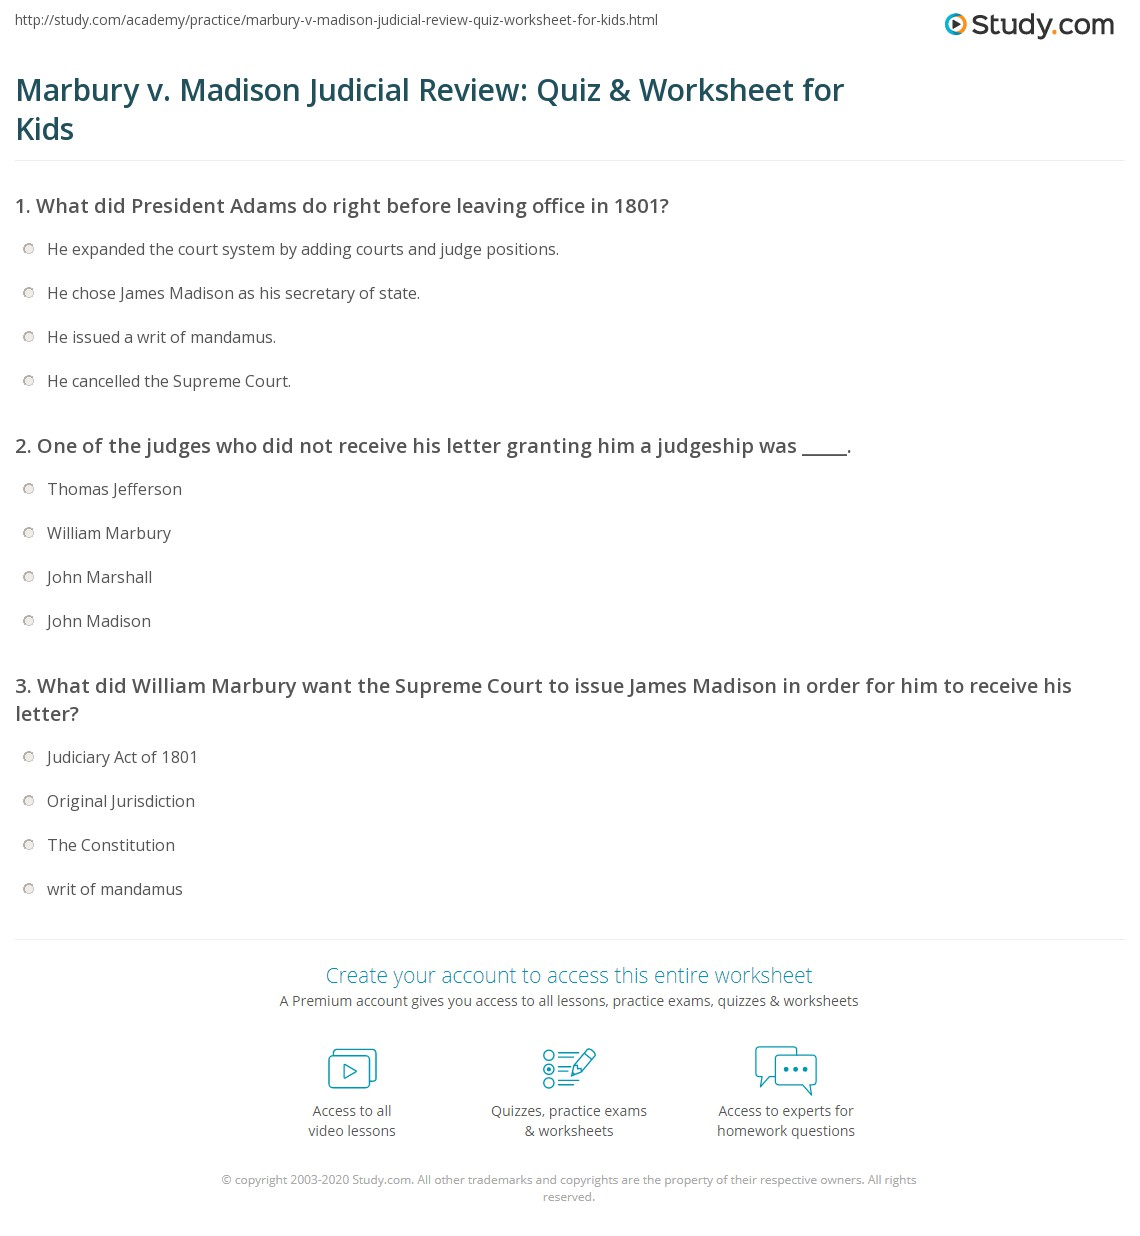 Marbury v. Madison Judicial Review: Quiz & Worksheet for ...